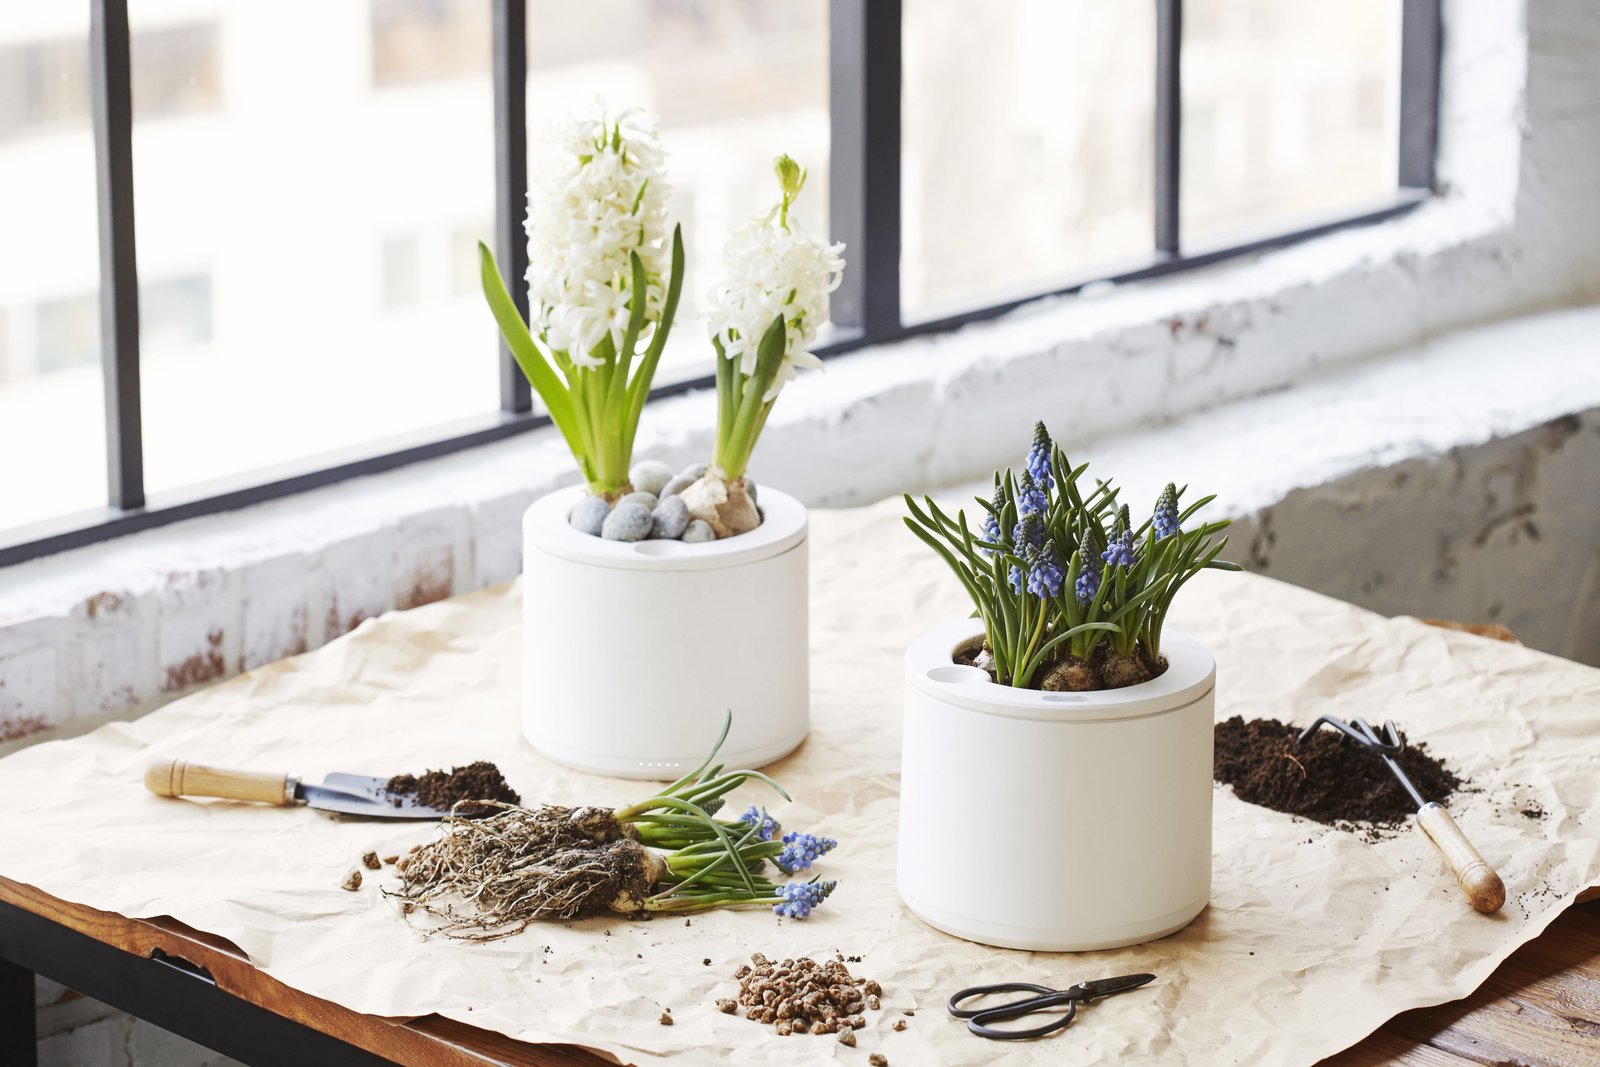 Photo 6 of 10 in Clueless About Gardening? These 5 Smart Planters Can Help